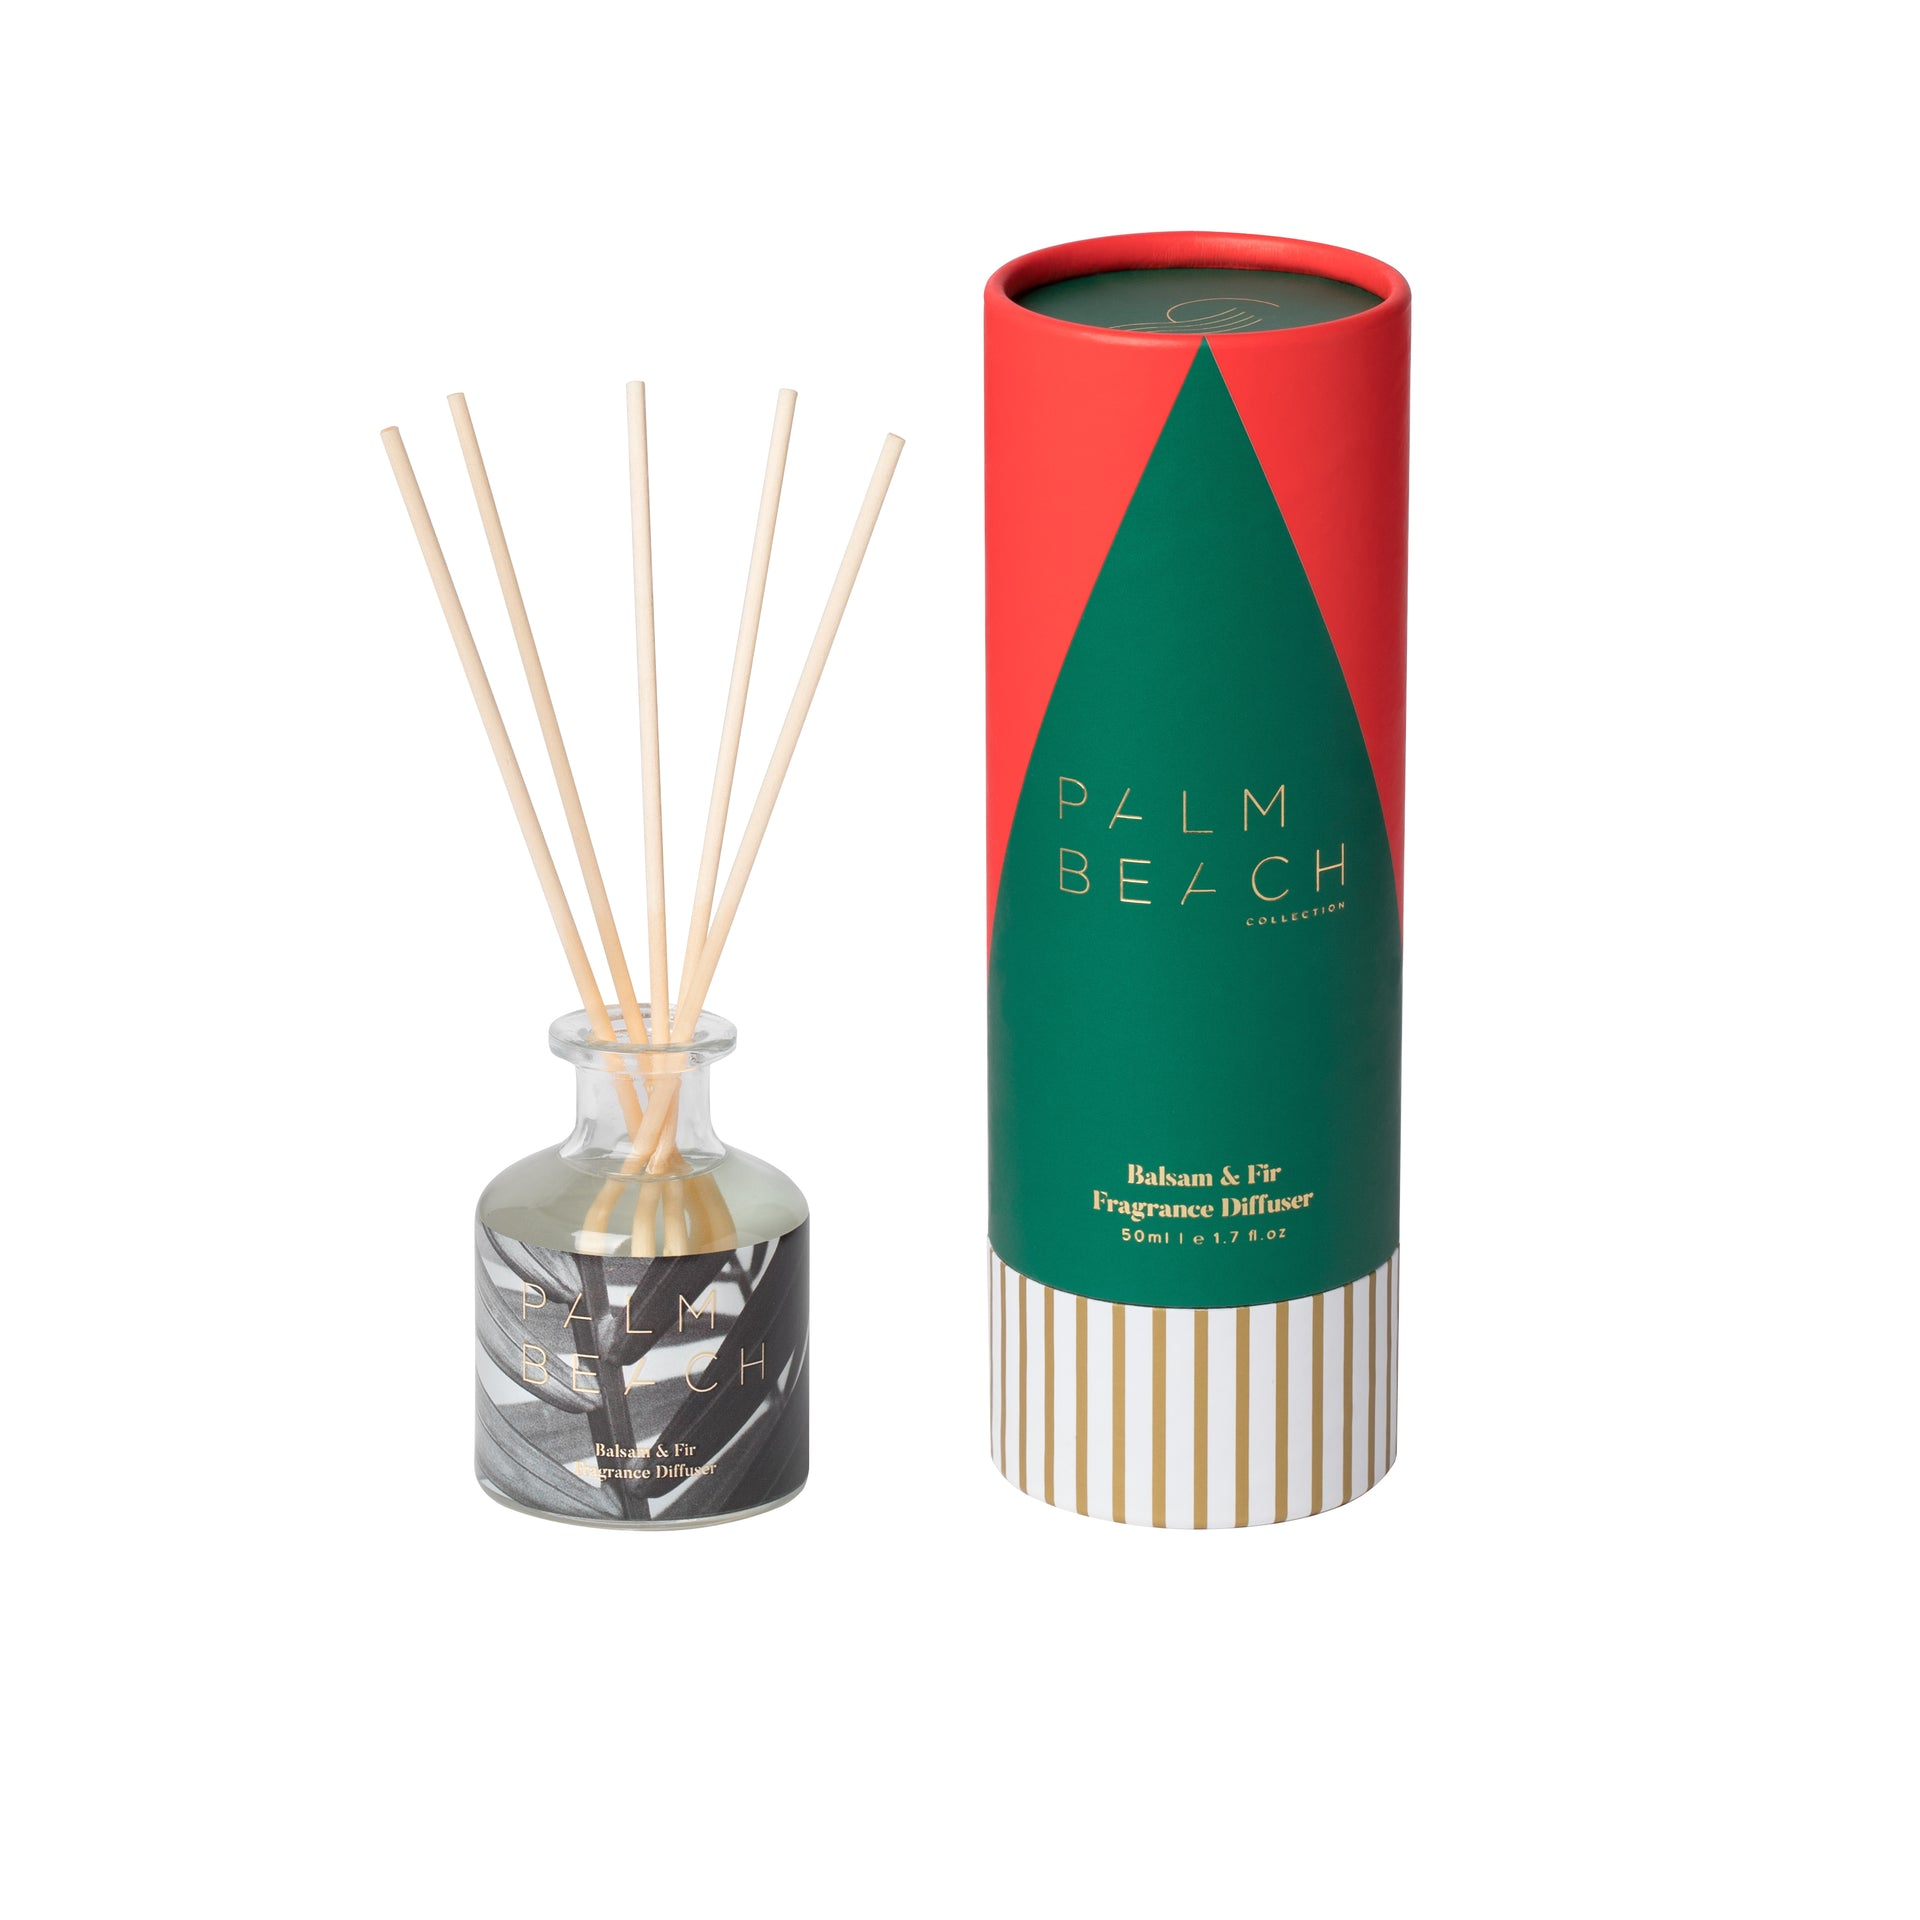 Balsam & Fir Mini Reed Diffuser